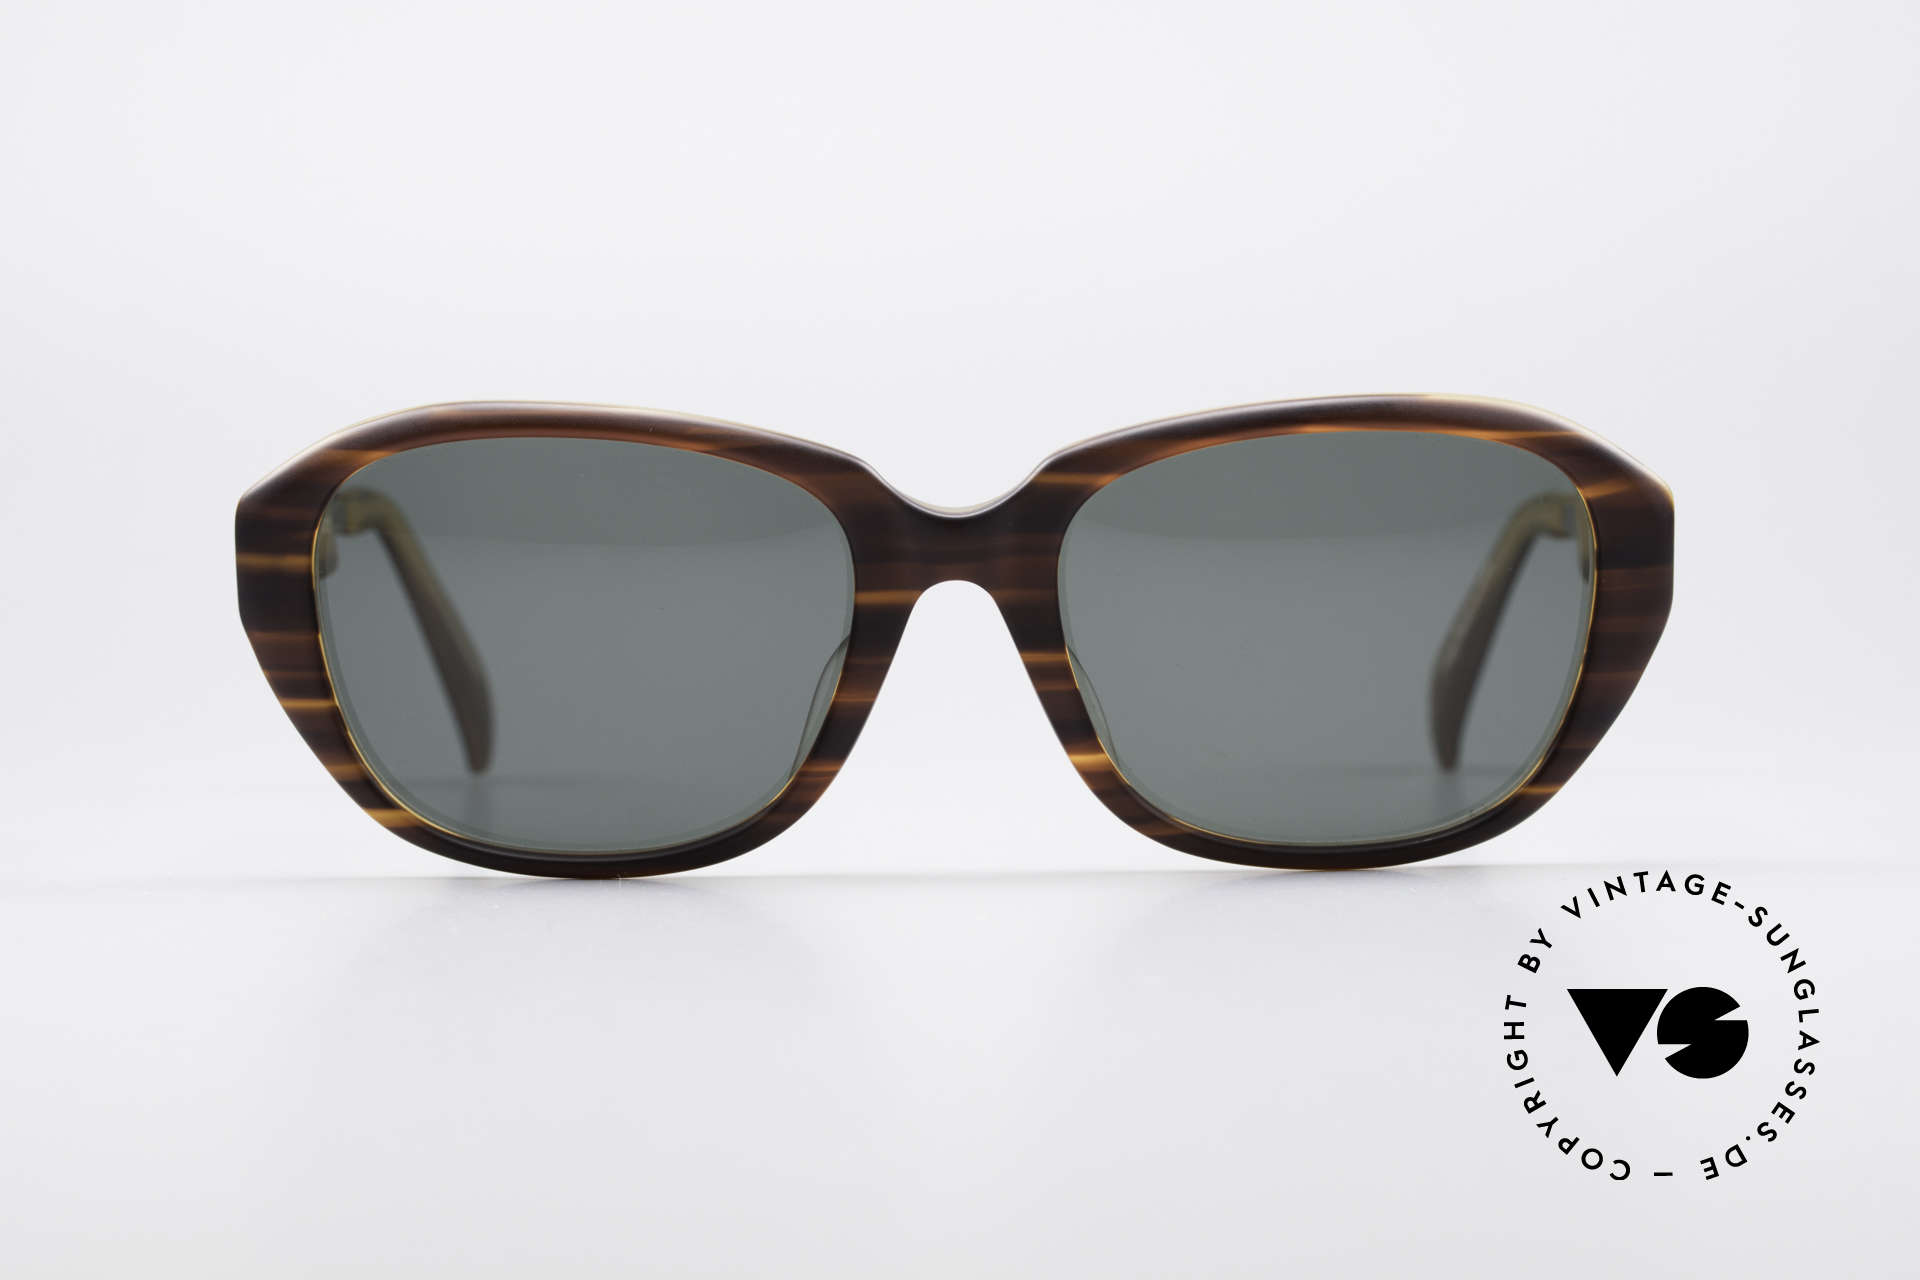 Jean Paul Gaultier 56-1072 90's Designer Sunglasses, great combination of materials & colors; eye-catcher!, Made for Men and Women